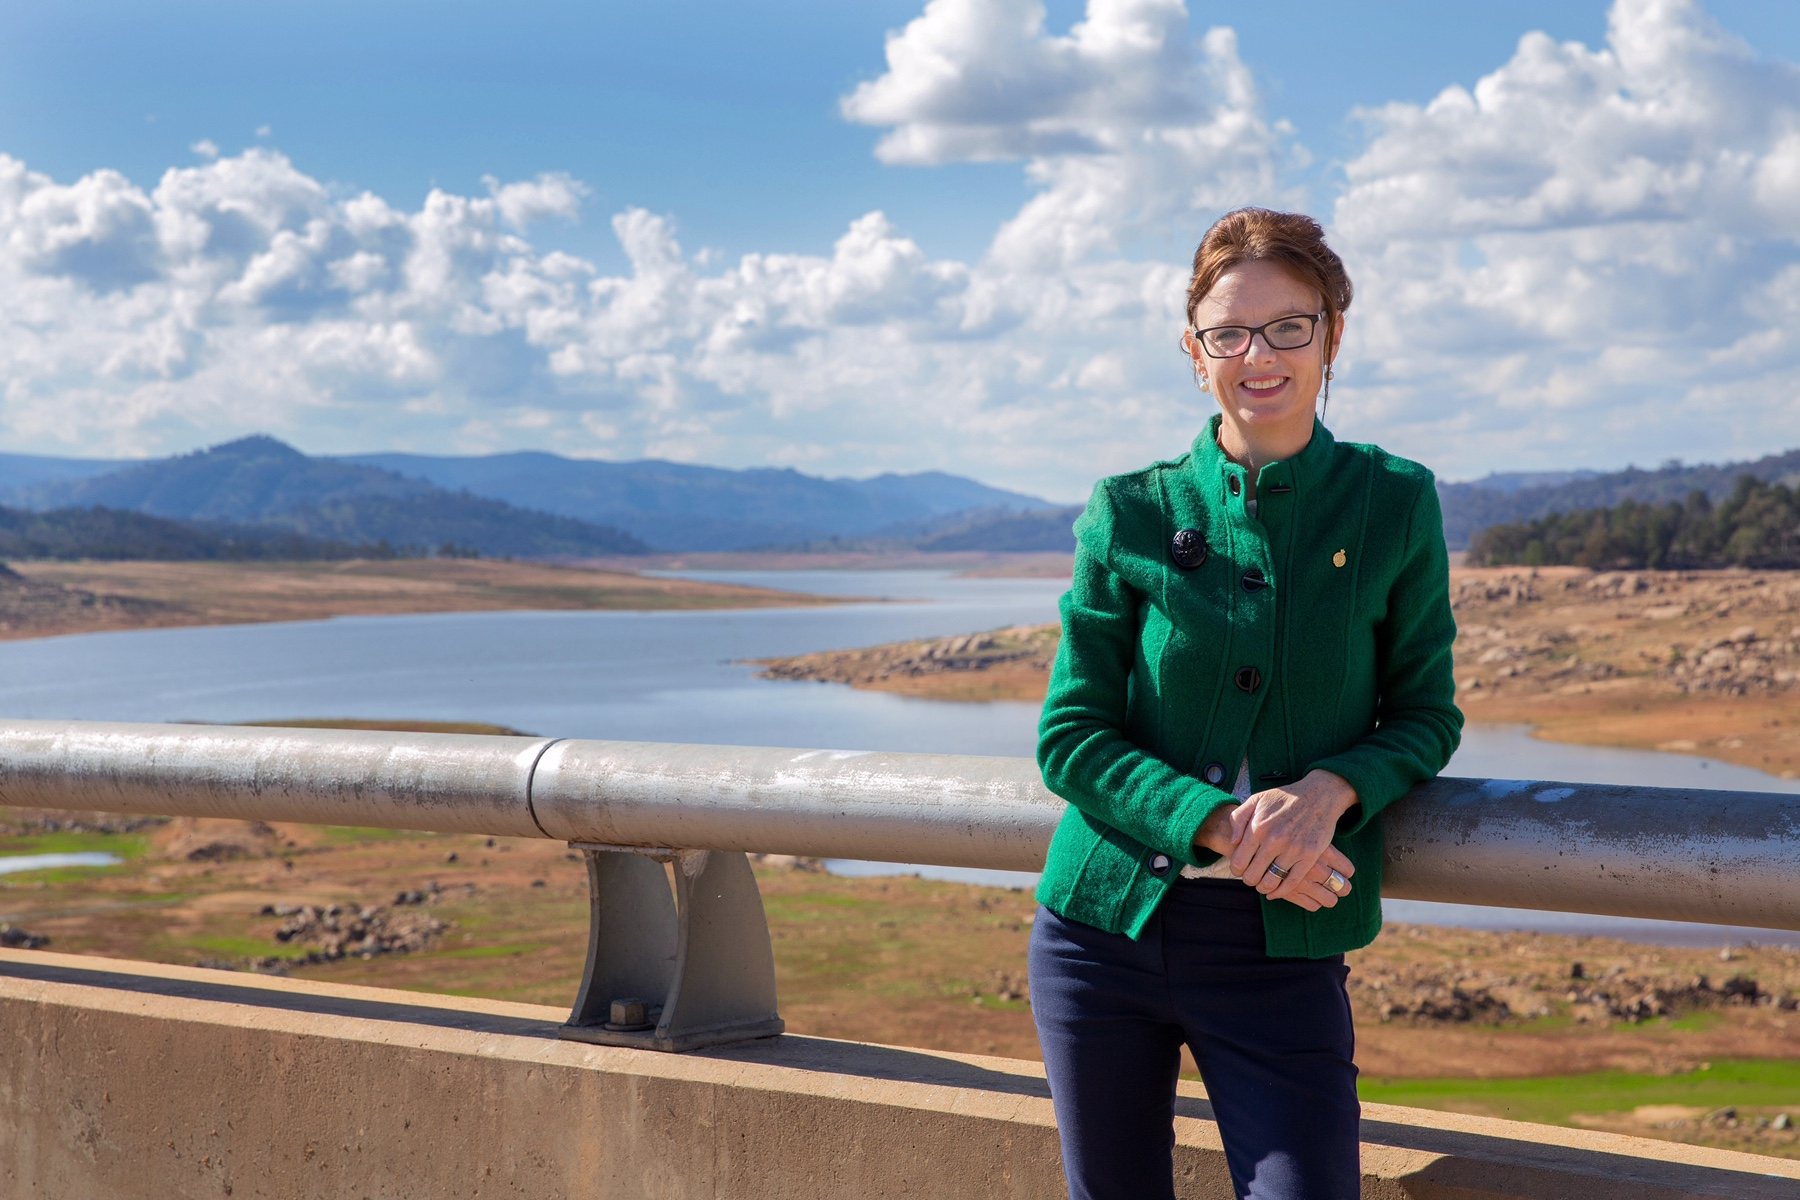 Steph Cooke leans on the rail at the Wyangala Dam and looks at the camera. The Dam is behind her and the water level is visibly low.